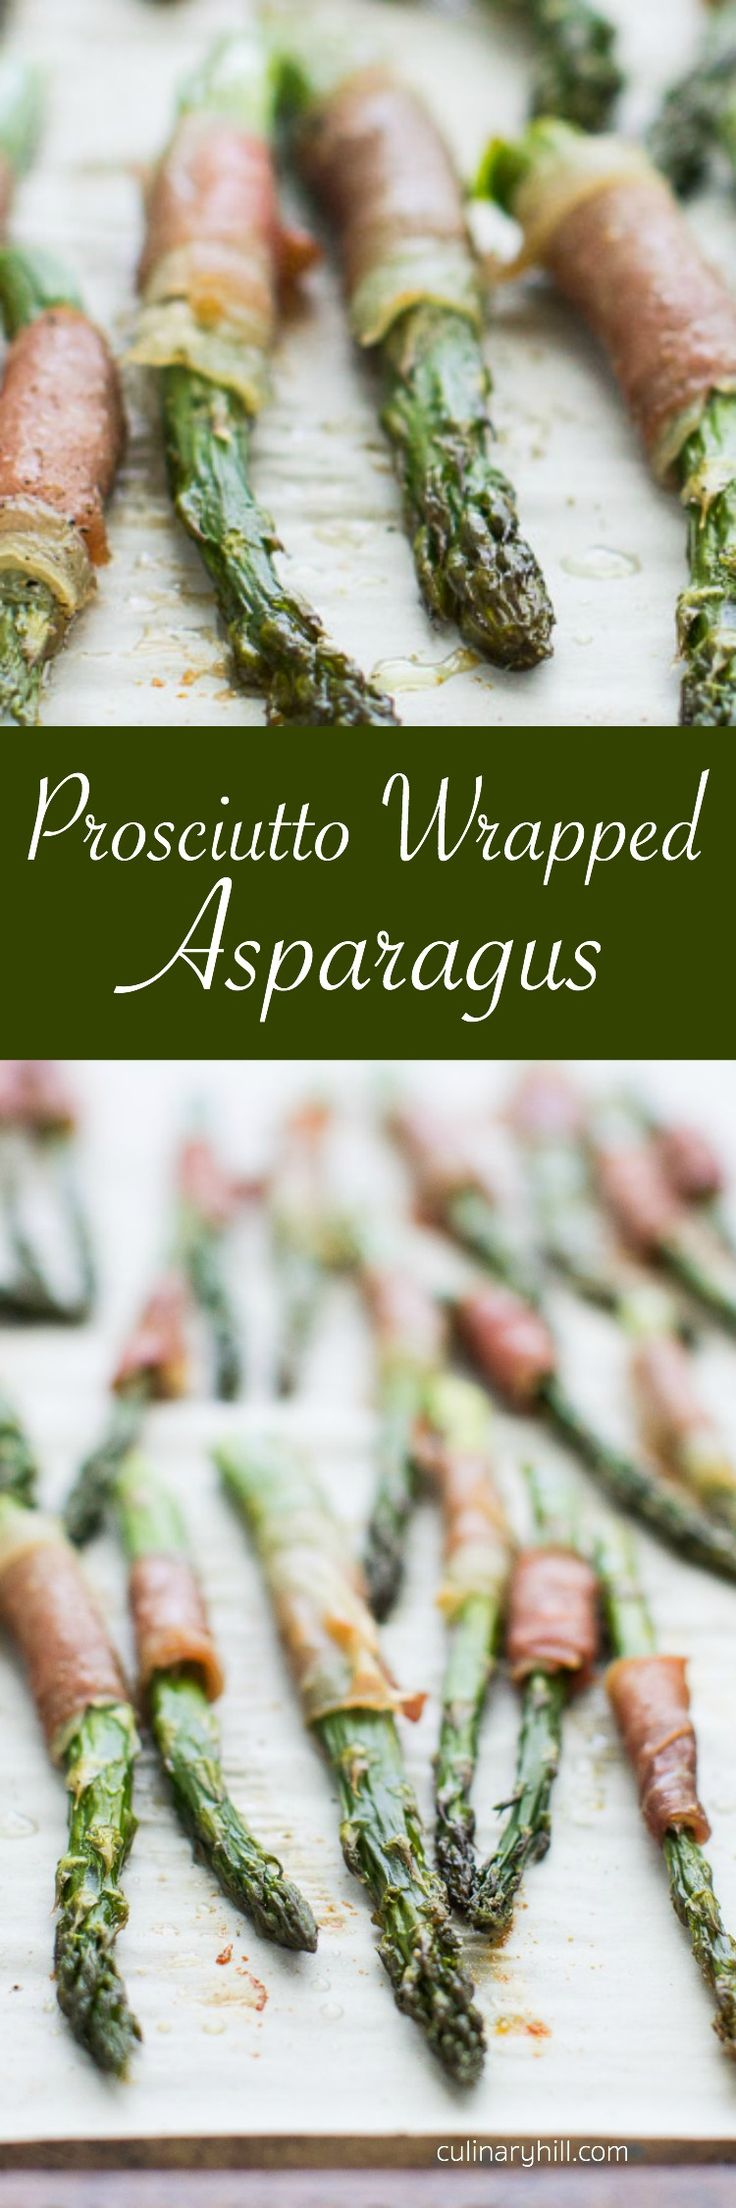 Prosciutto Wrapped Asparagus Makes A Fun And Tasty Appetizer Or An Elegant  First Course! Bakes